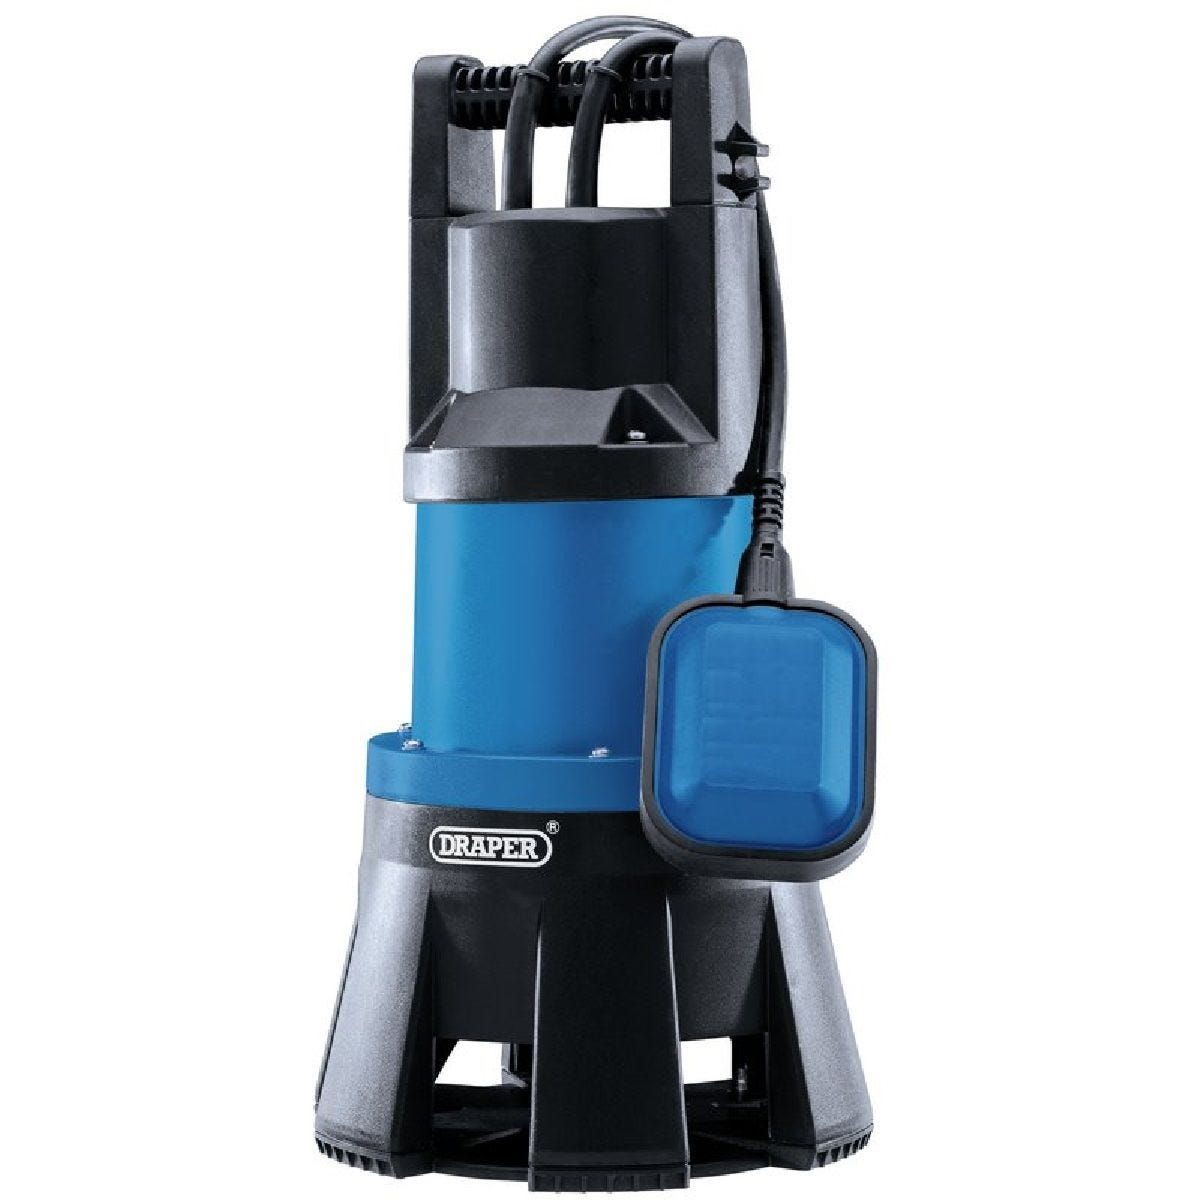 Draper Submersible Dirty Water Pump with Float Switch - 1300W